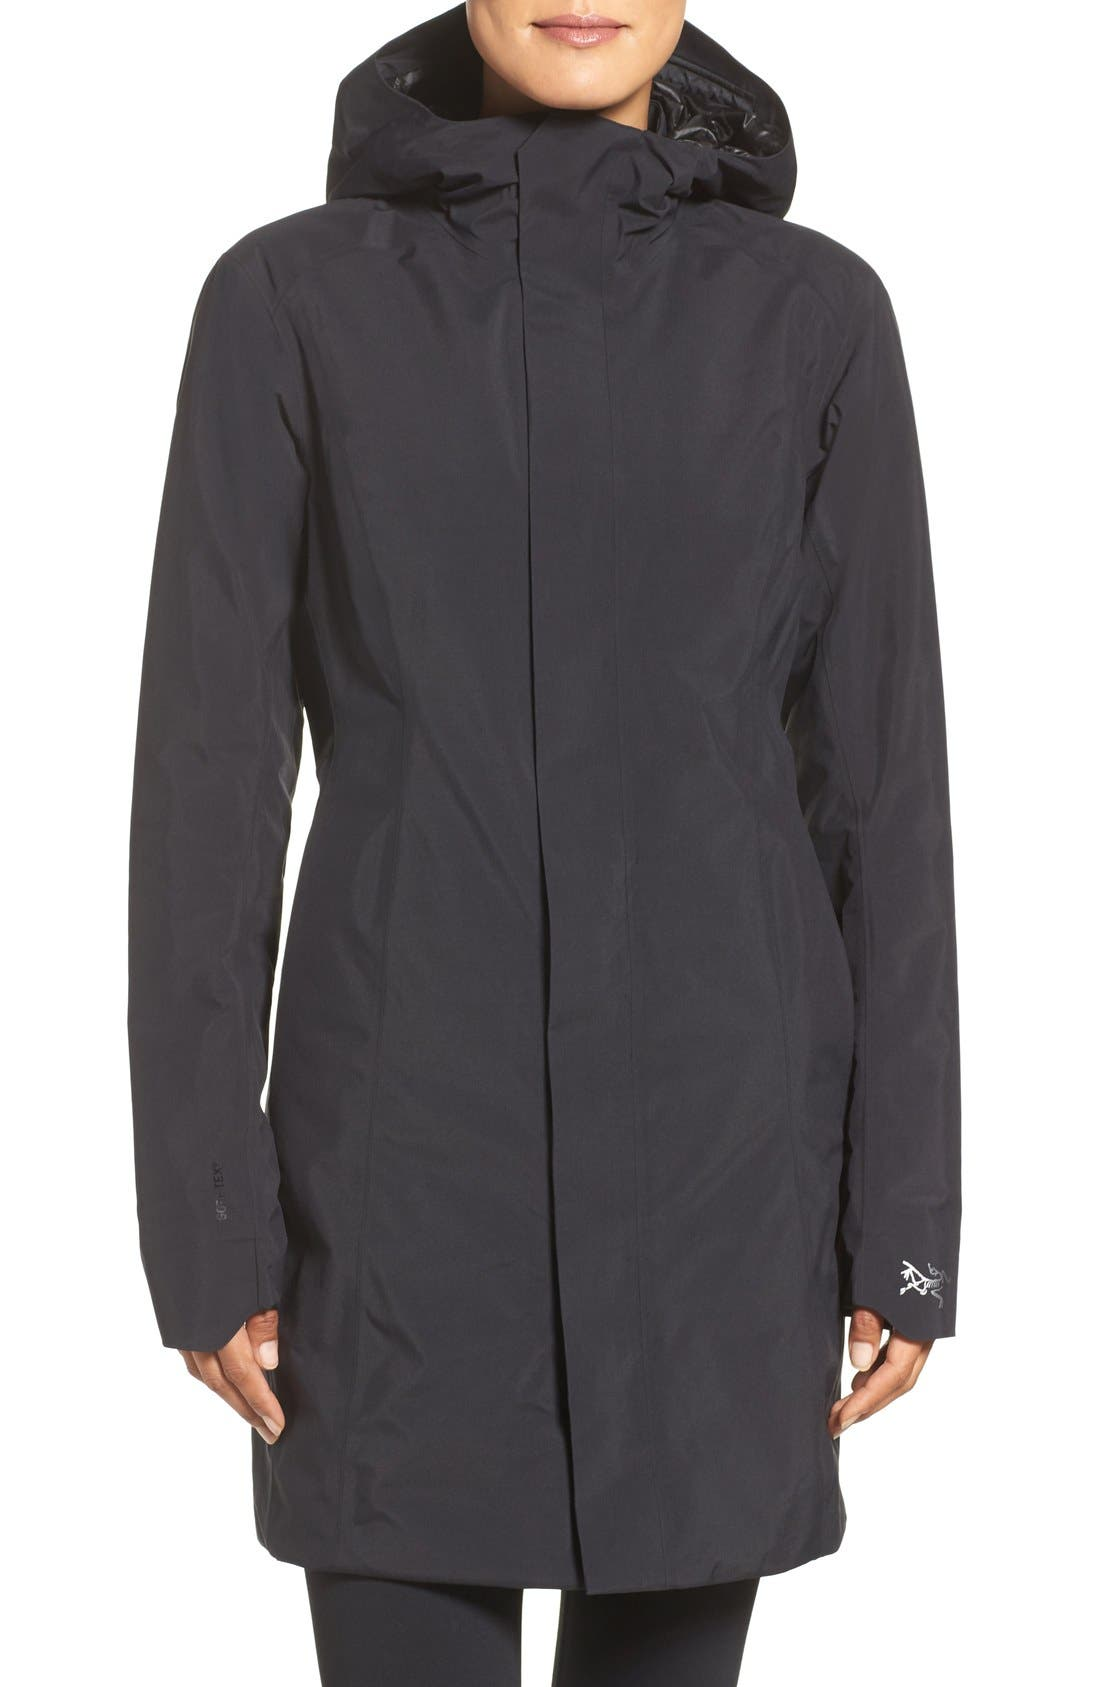 Alternate Image 1 Selected - Arc'teryx Durant Waterproof Hooded Jacket